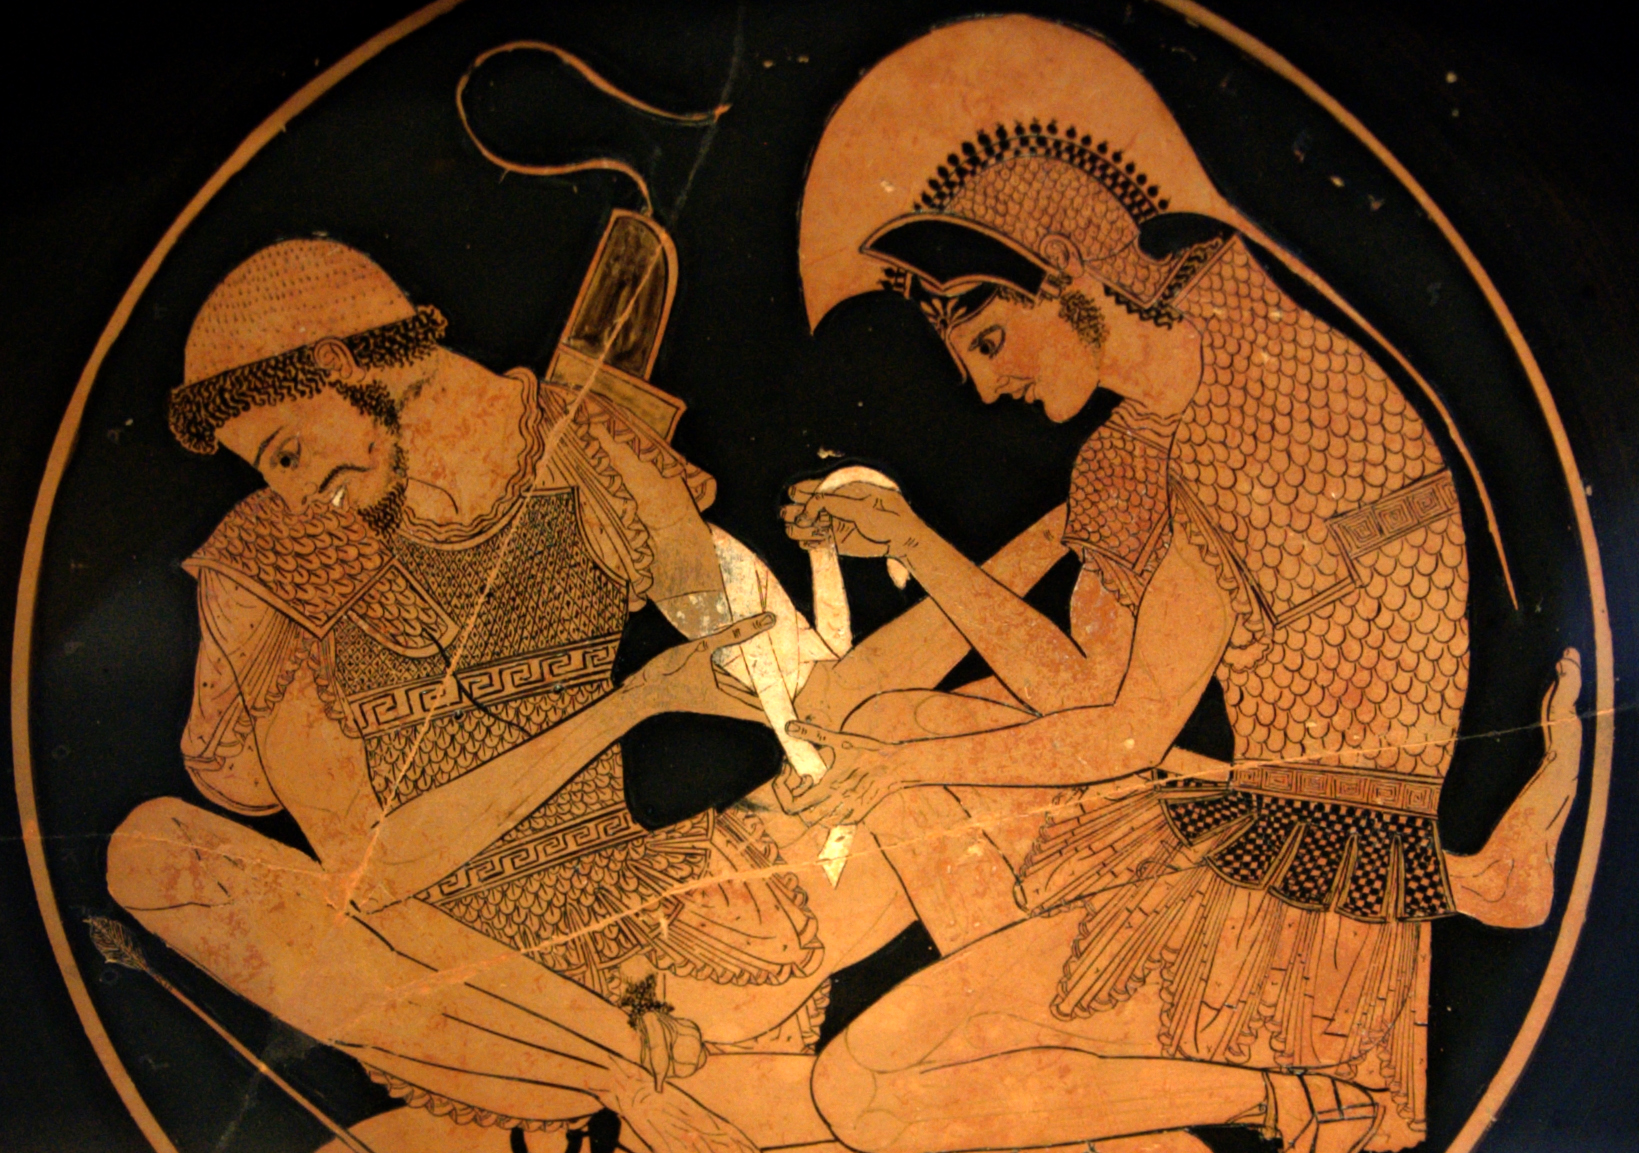 character analysis of achilles in the illiad by homer The iliad-character analysis achilles- + son of peleus and sea-nymph thetis + most powerful warrior + commander of the myrmidons (phthia in greece's soldiers.